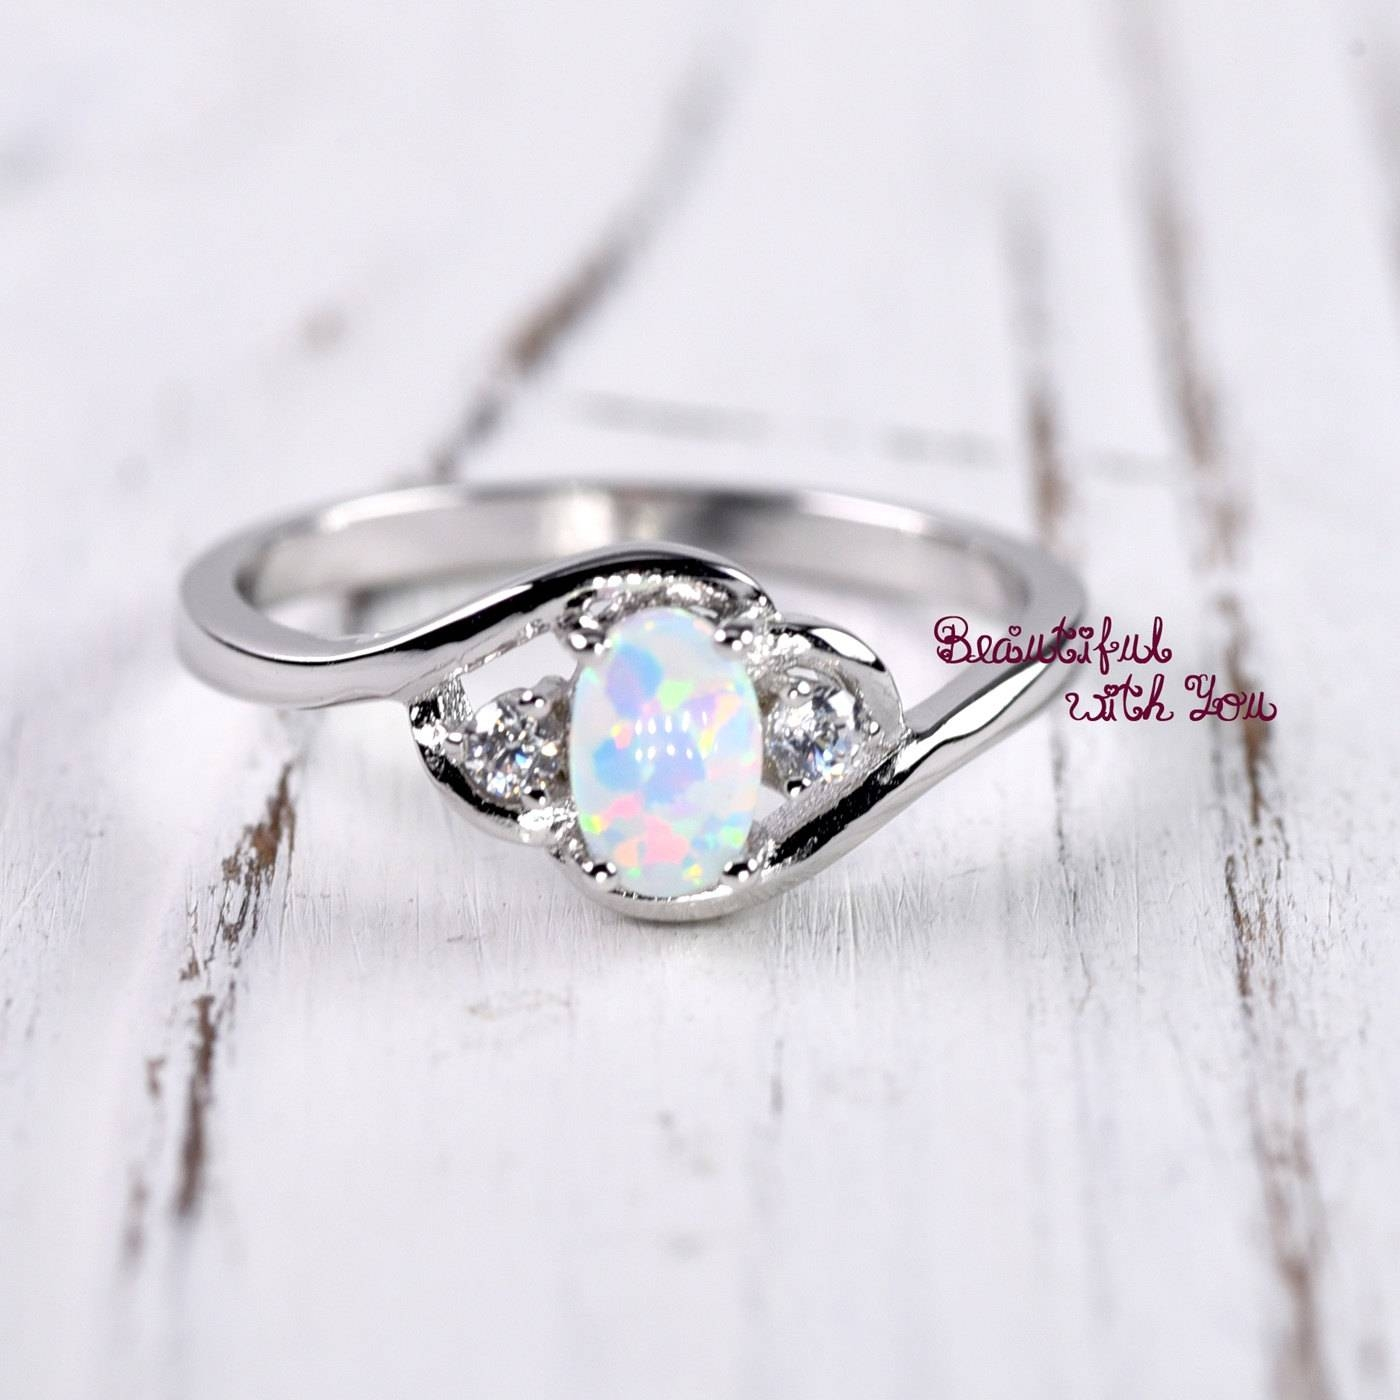 White Opal Ring Silver Lab Opal Ring Opal Wedding Band Pertaining To Opal Wedding Rings (View 6 of 15)